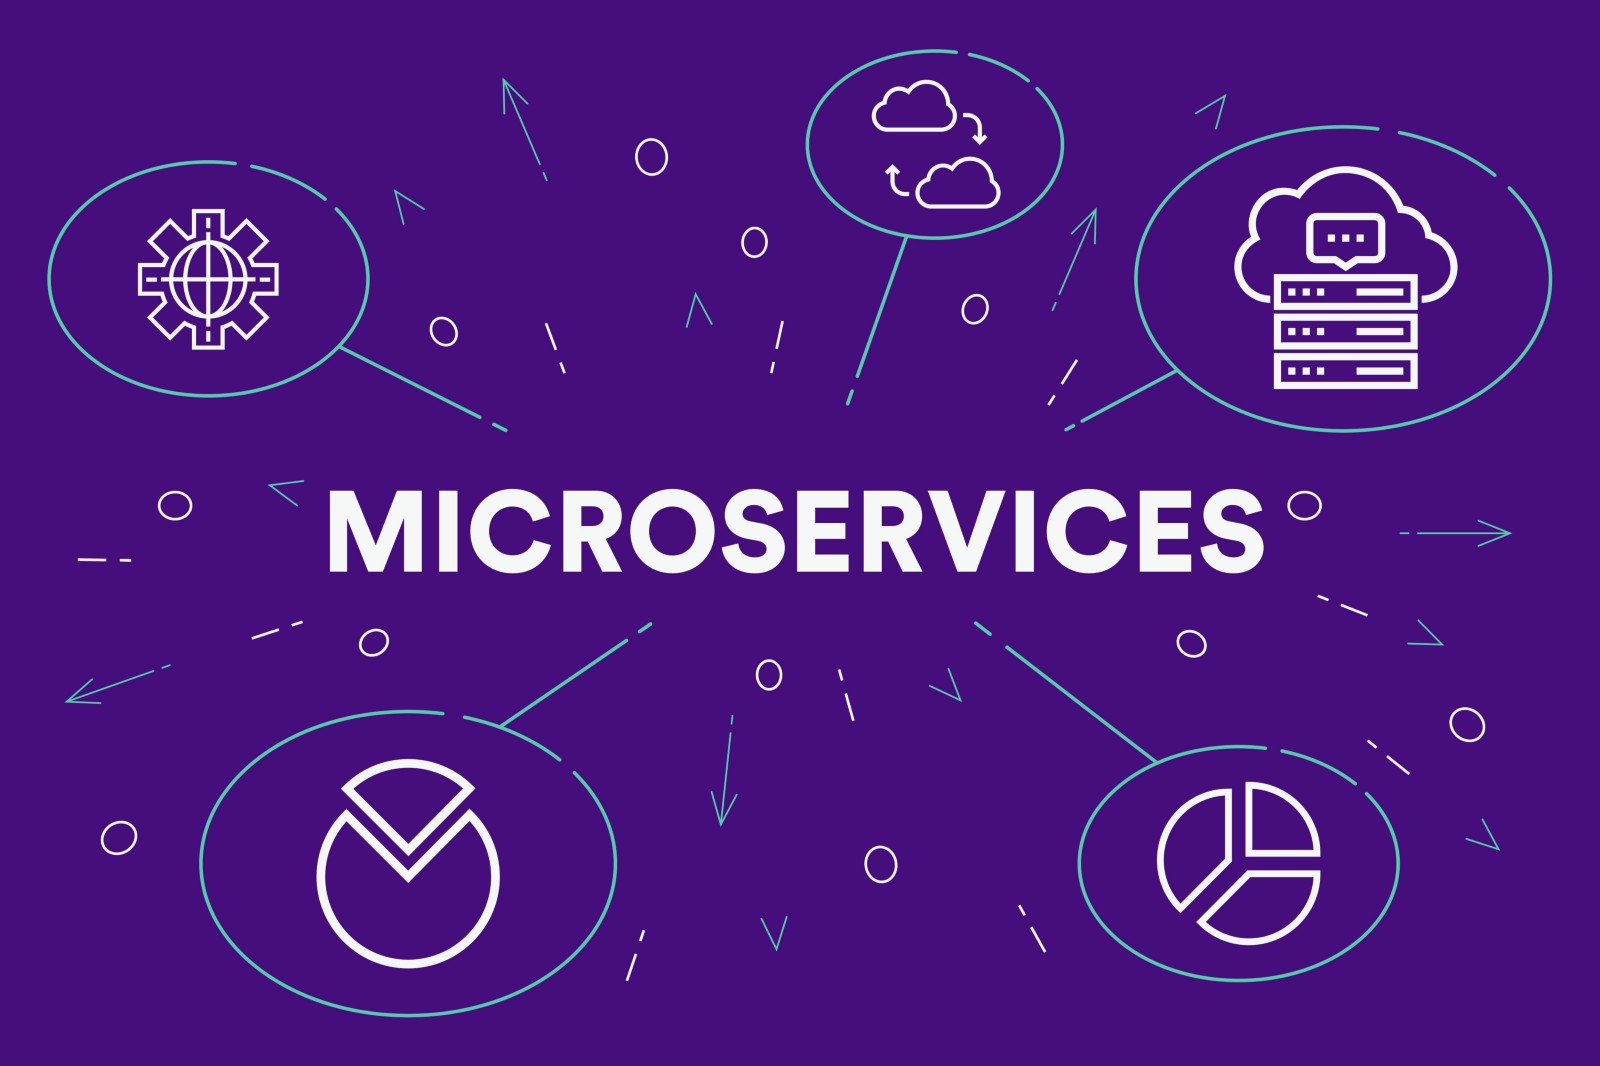 The What Why And How Of A Microservices Architecture Also Can I Run Them In Parallel Or Some Kind Circuit To Save For Many Years Now We Have Been Building Systems Getting Better At It Several Technologies Architectural Patterns Best Practices Emerged